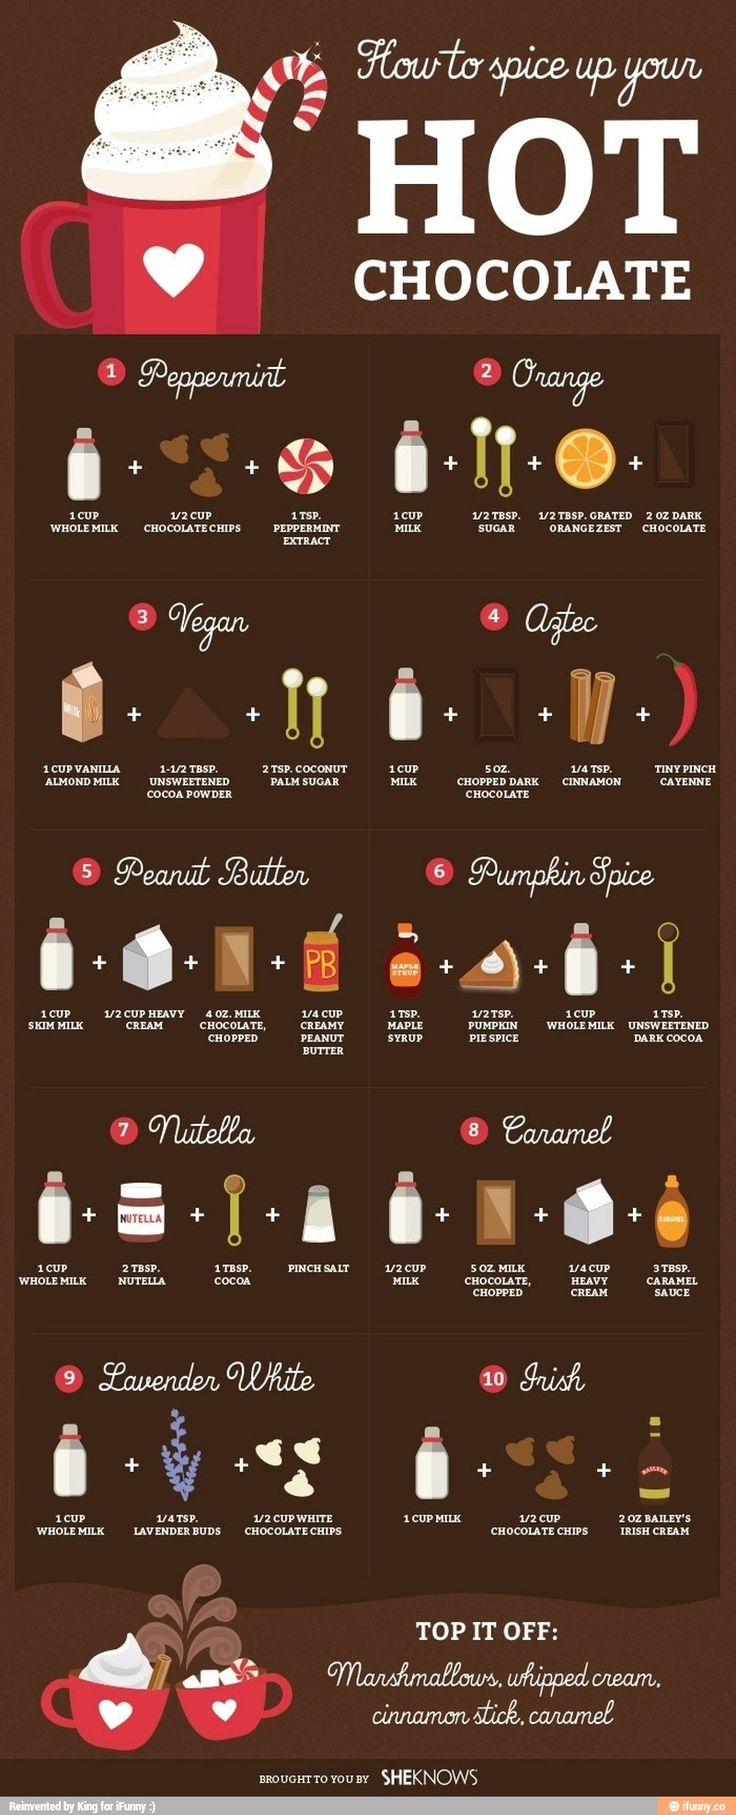 Hot chocolate to make this winter delicious!